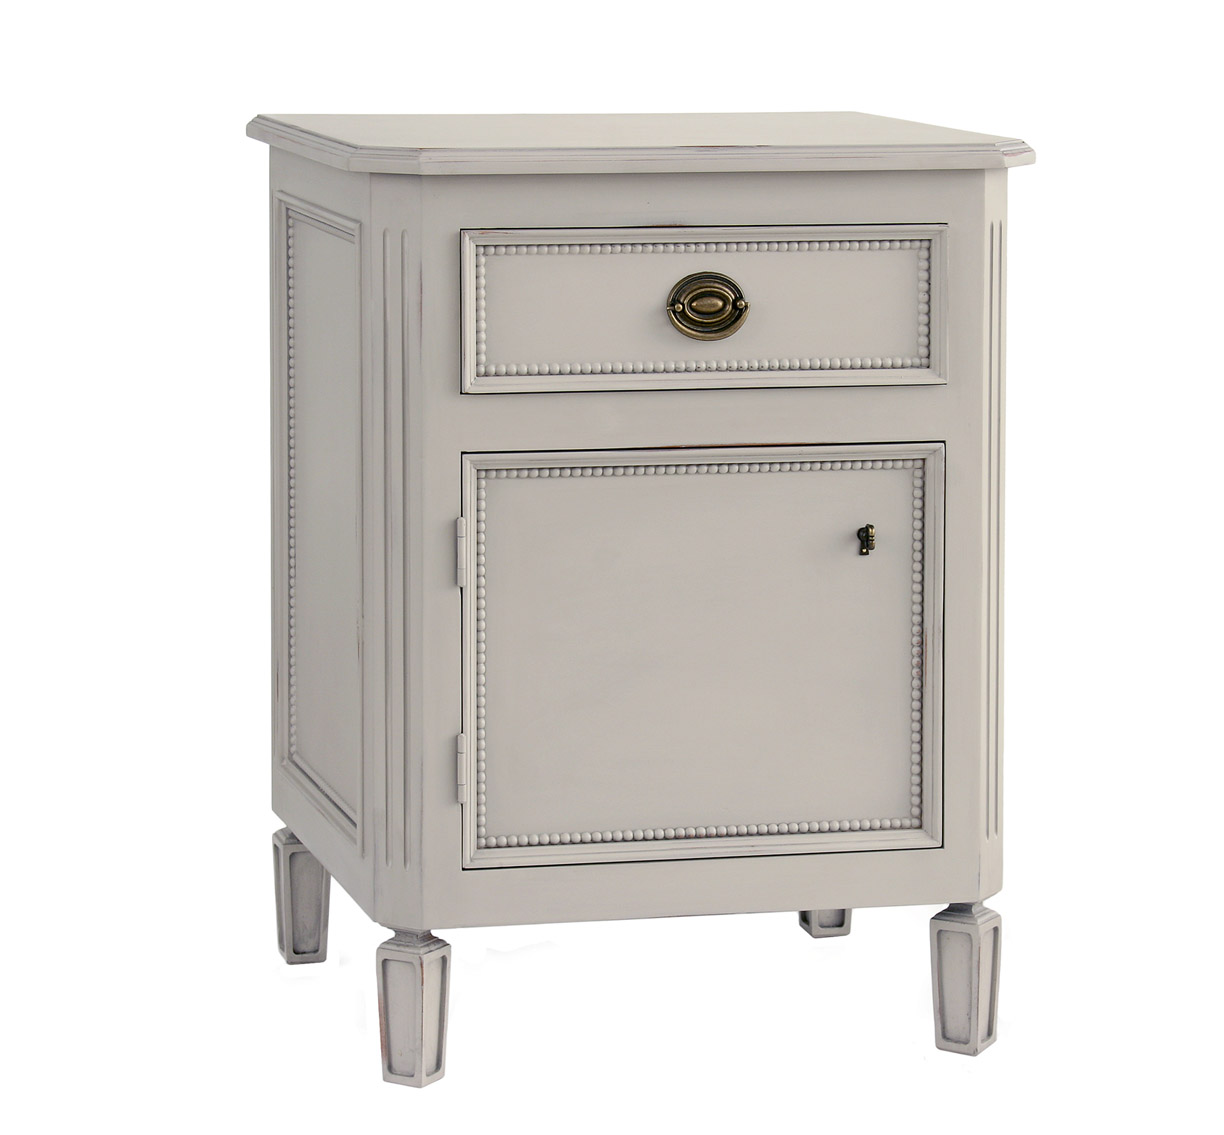 wire accent table the fantastic unbelievable target locker swedish nightstand shell grey antique style nightstands gold headboard small wooden cupboard free furniture daybed very